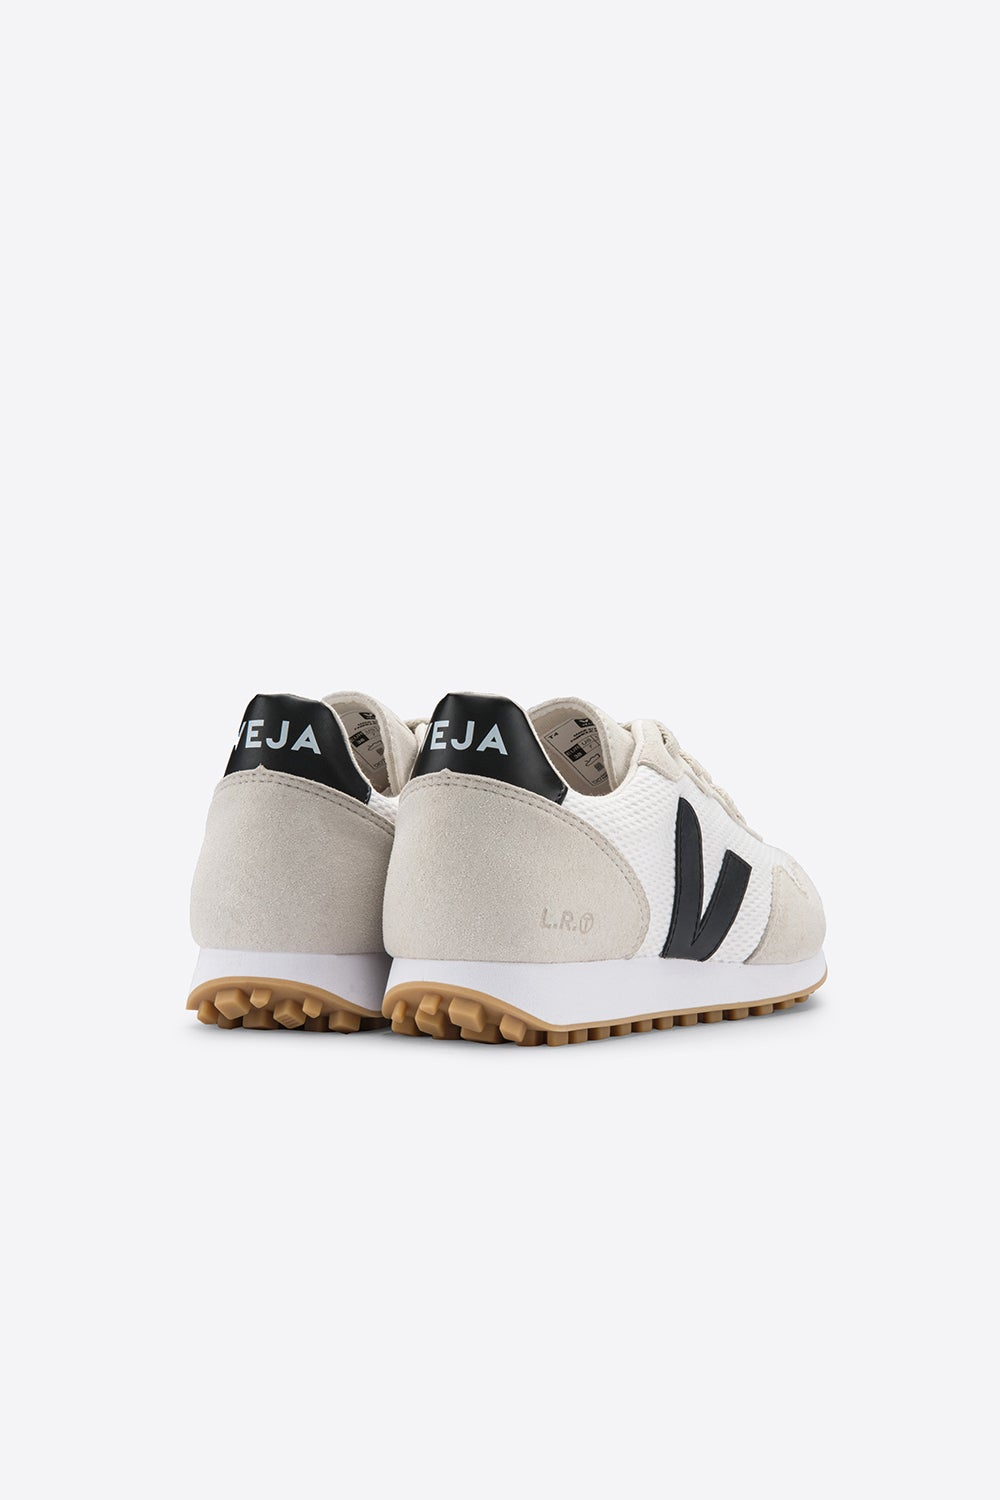 Veja SDU Rec White/Black/Natural